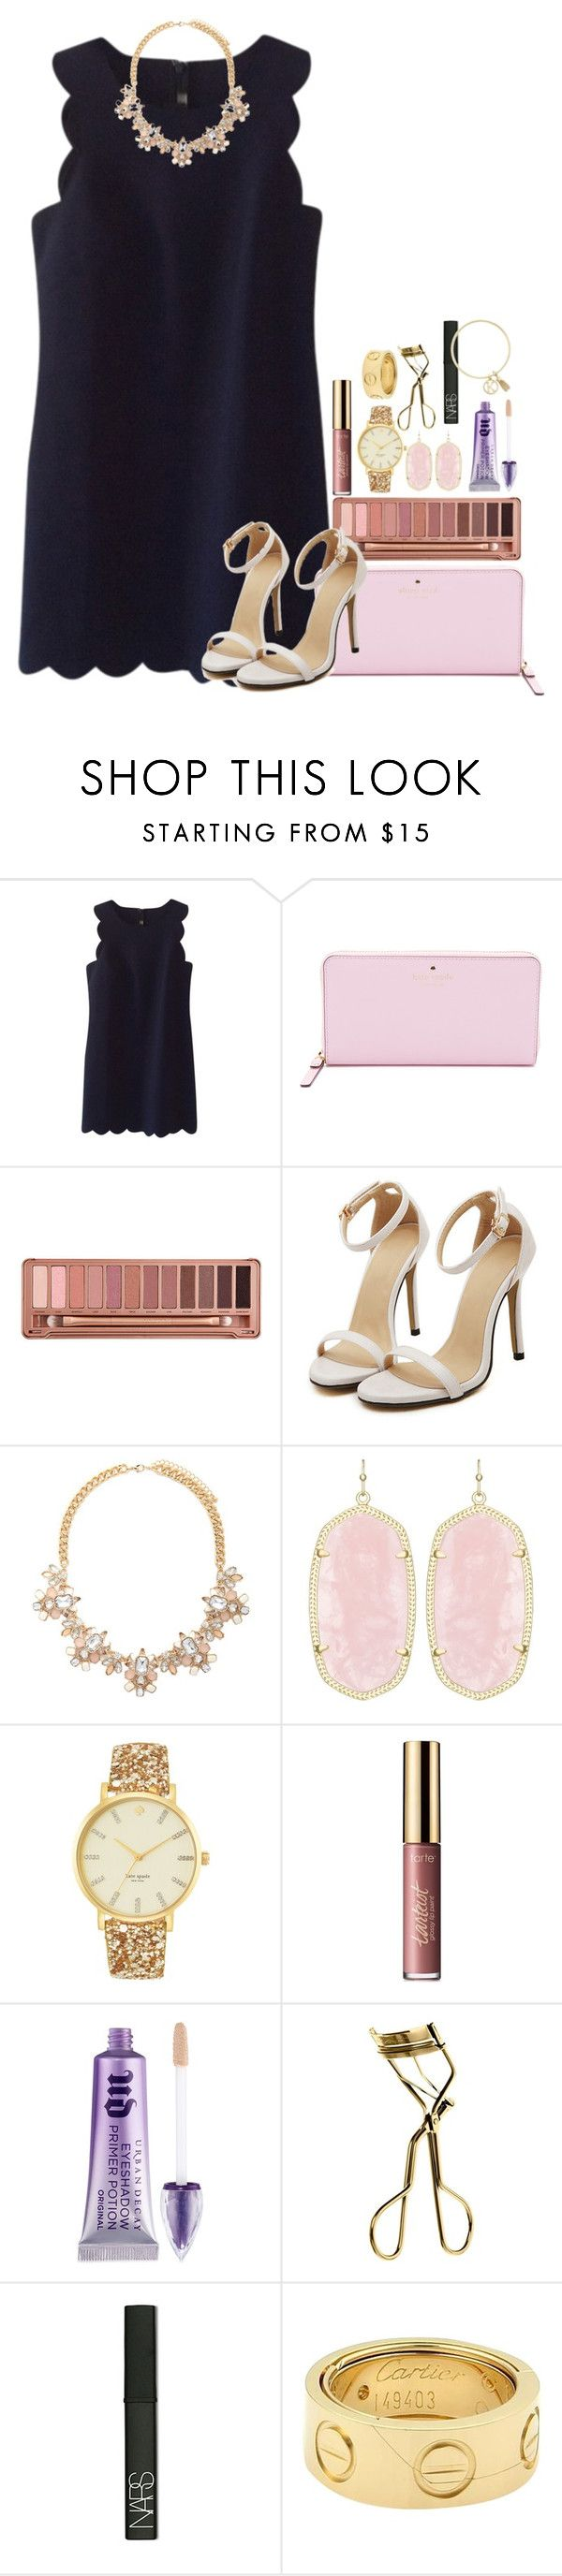 """""""wanting to go to something fancy"""" by thefashionbyem ❤ liked on Polyvore featuring J.Crew, Kate Spade, Urban Decay, Forever 21, Kendra Scott, tarte, MAC Cosmetics, NARS Cosmetics, Cartier and BCBGeneration"""